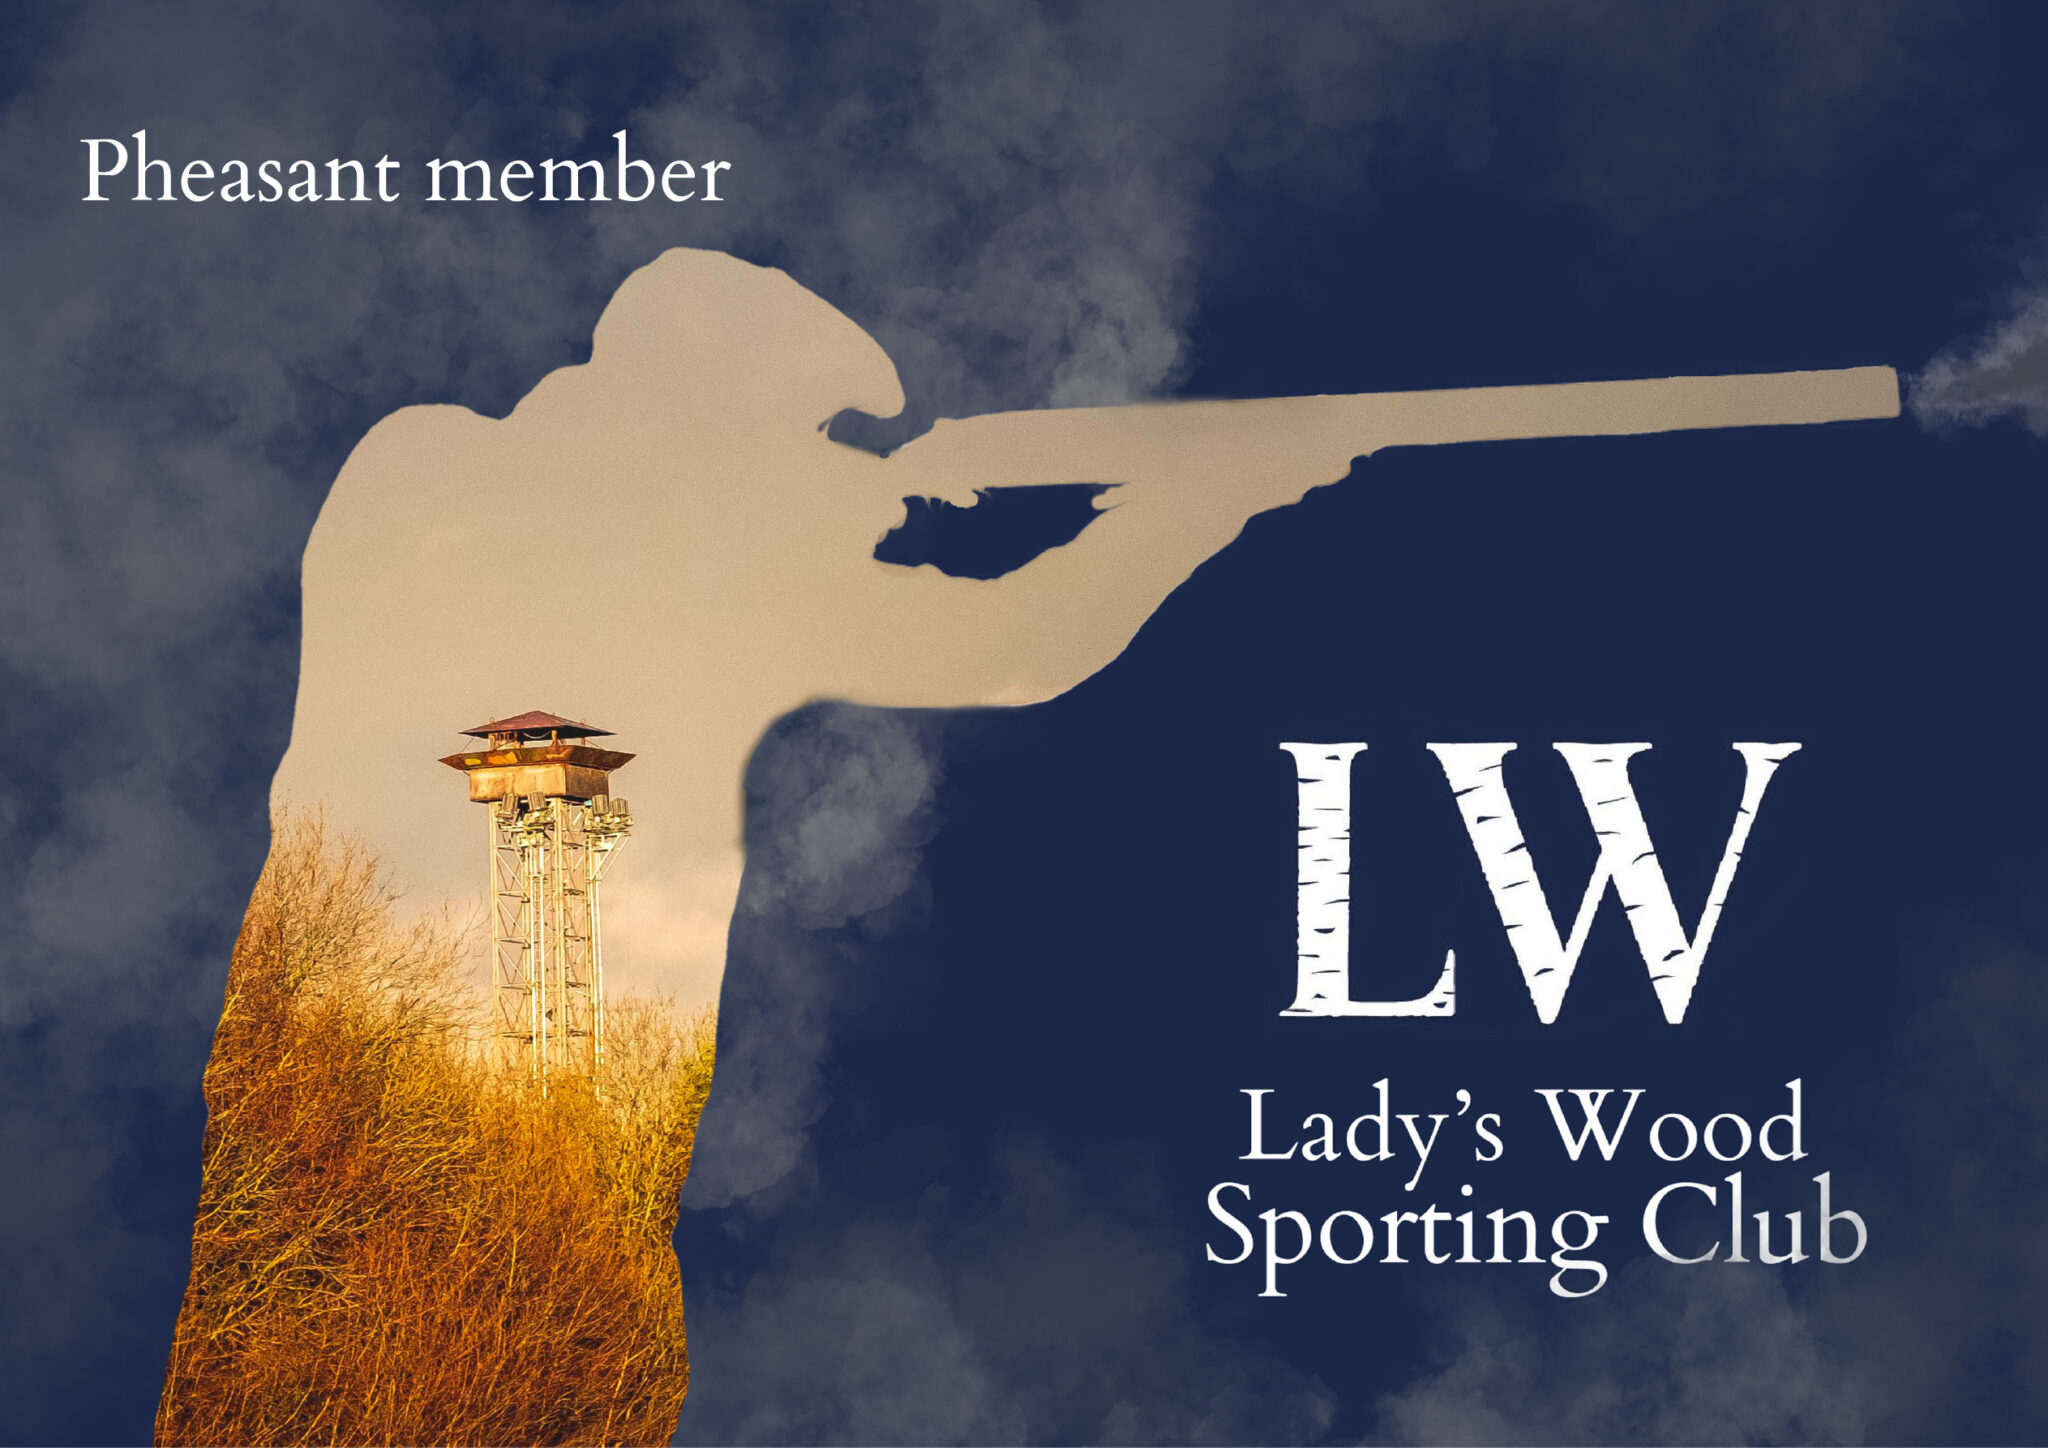 Lady's Wood Sporting Club Pheasant Member